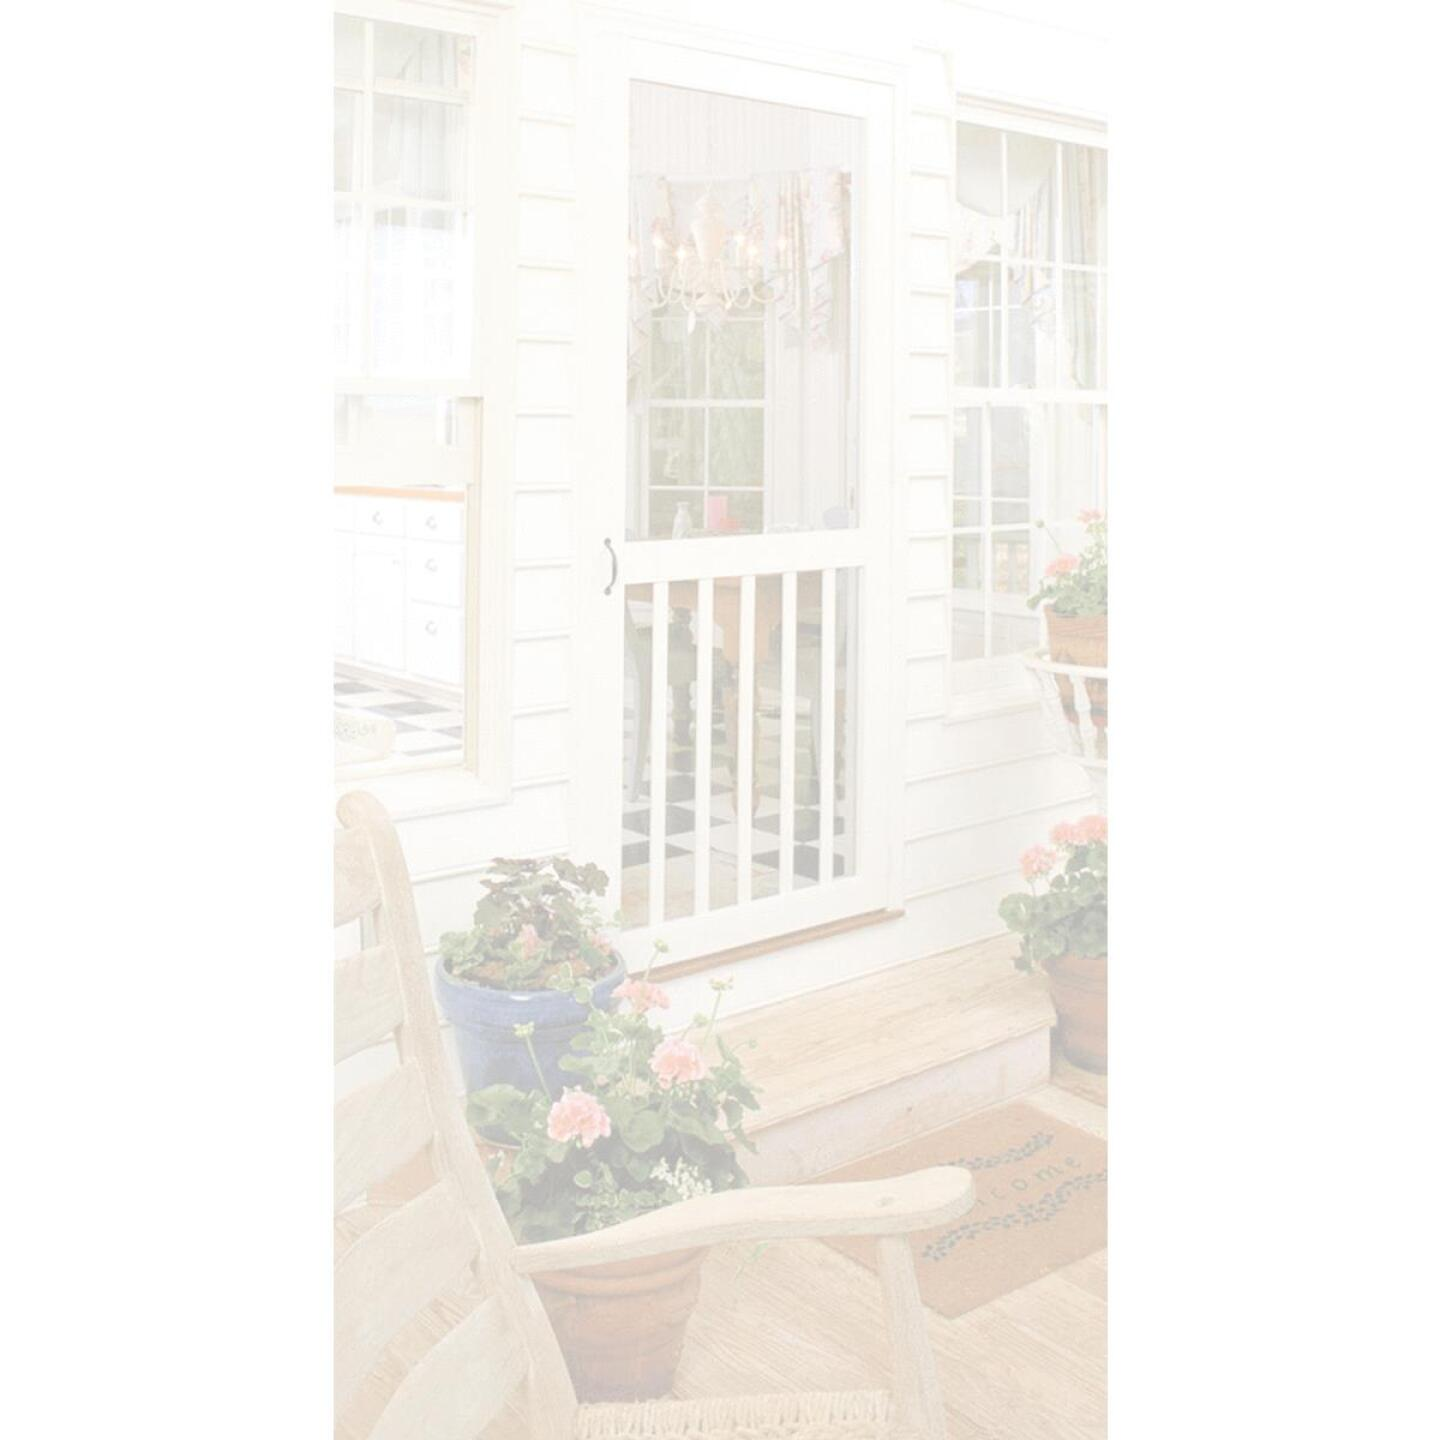 Snavely Kimberly Bay 32 In. W. x 80 In. H. x 1 In. Thick White Vinyl 5-Bar Screen Door Image 3